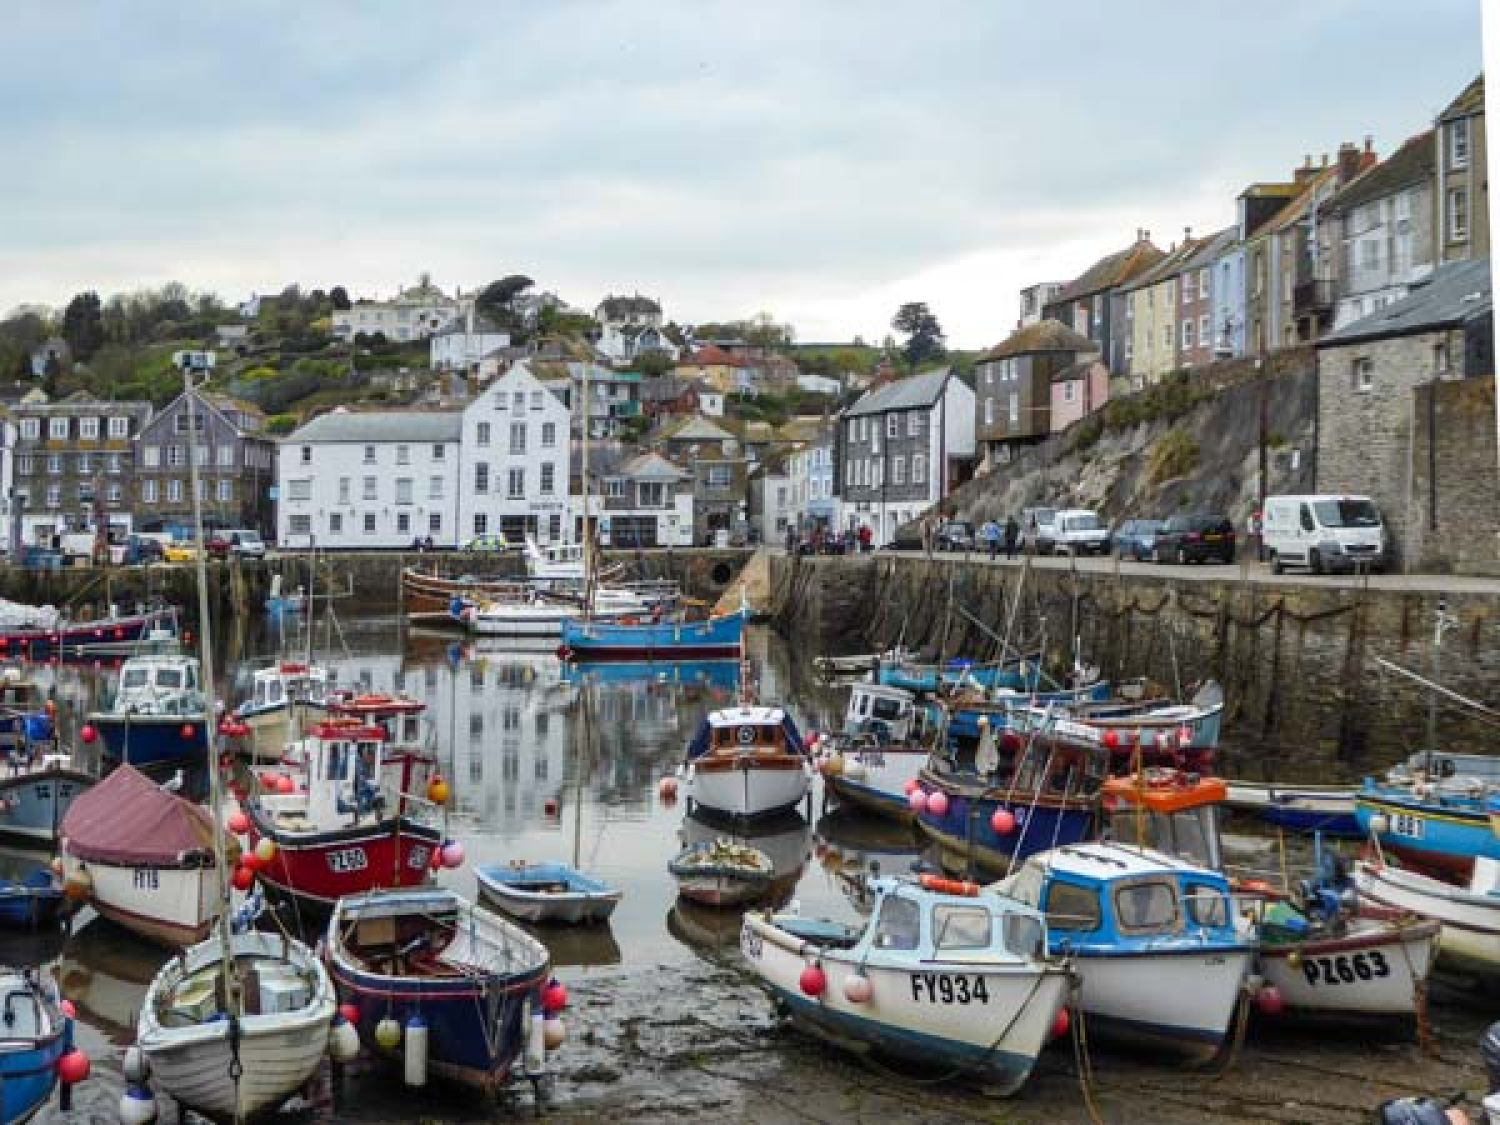 Old Cellars Mevagissey Cornwall Self Catering